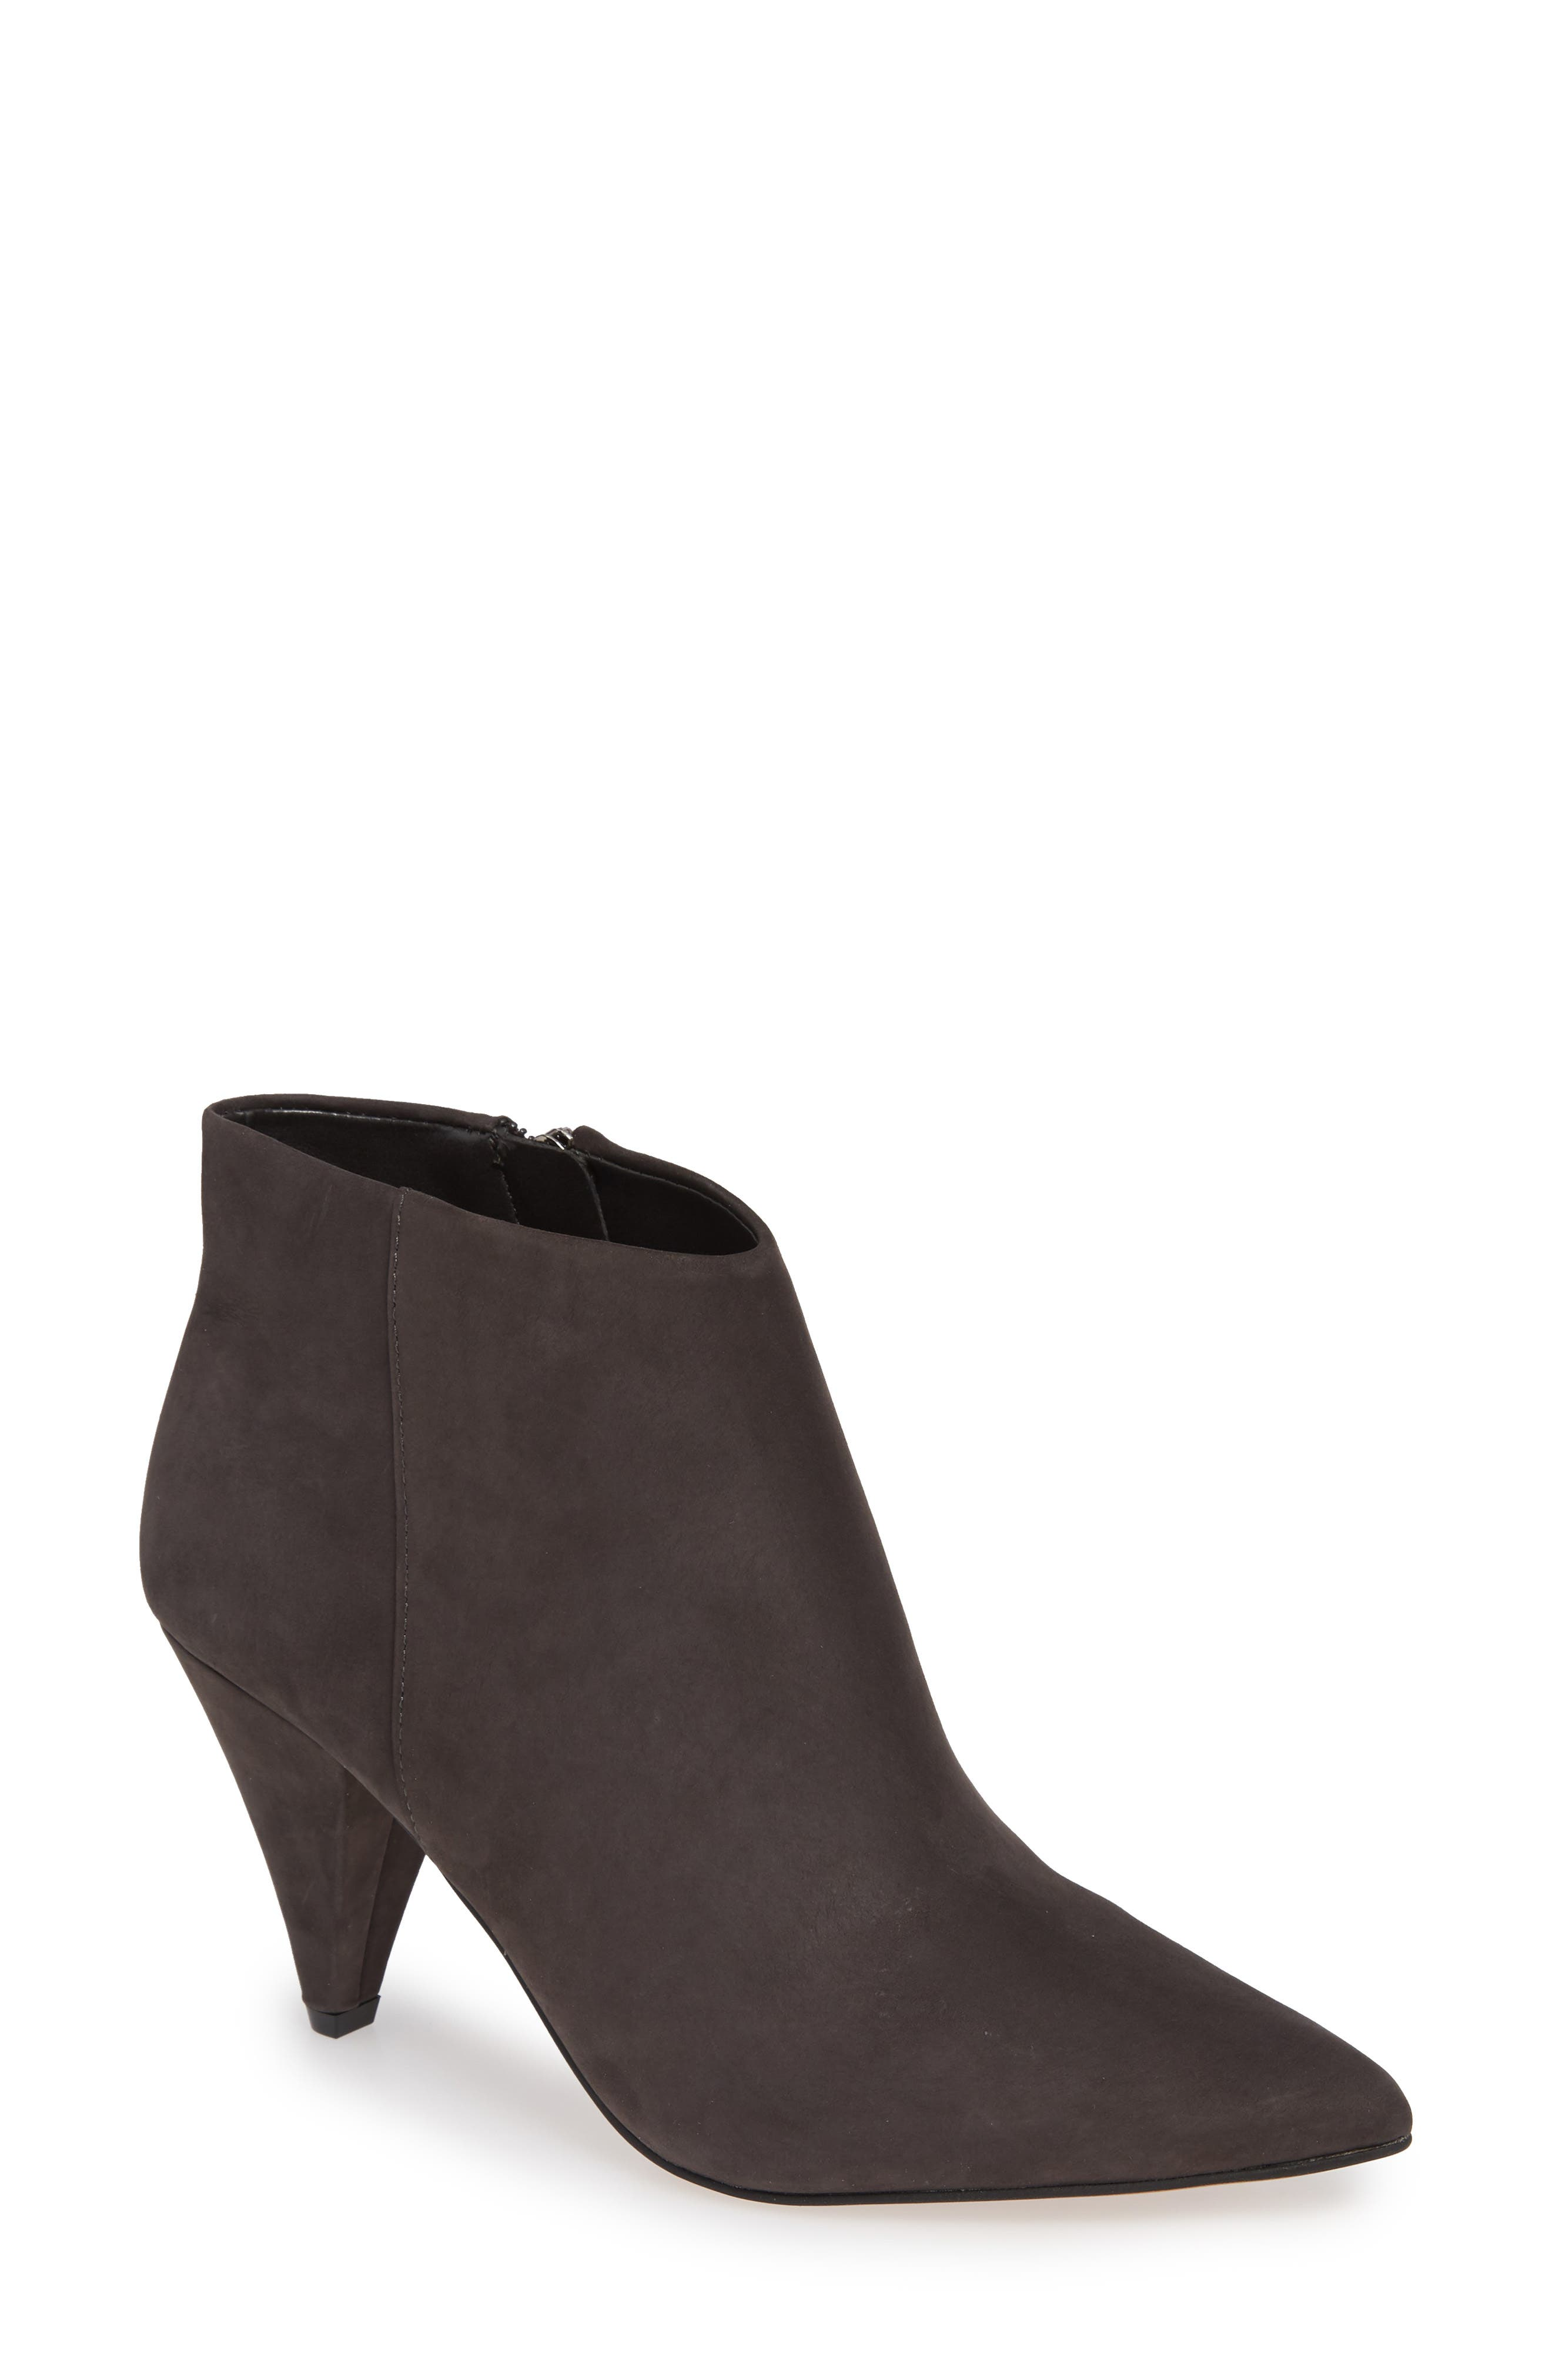 Adriela Bootie,                         Main,                         color, POWER GREY LEATHER